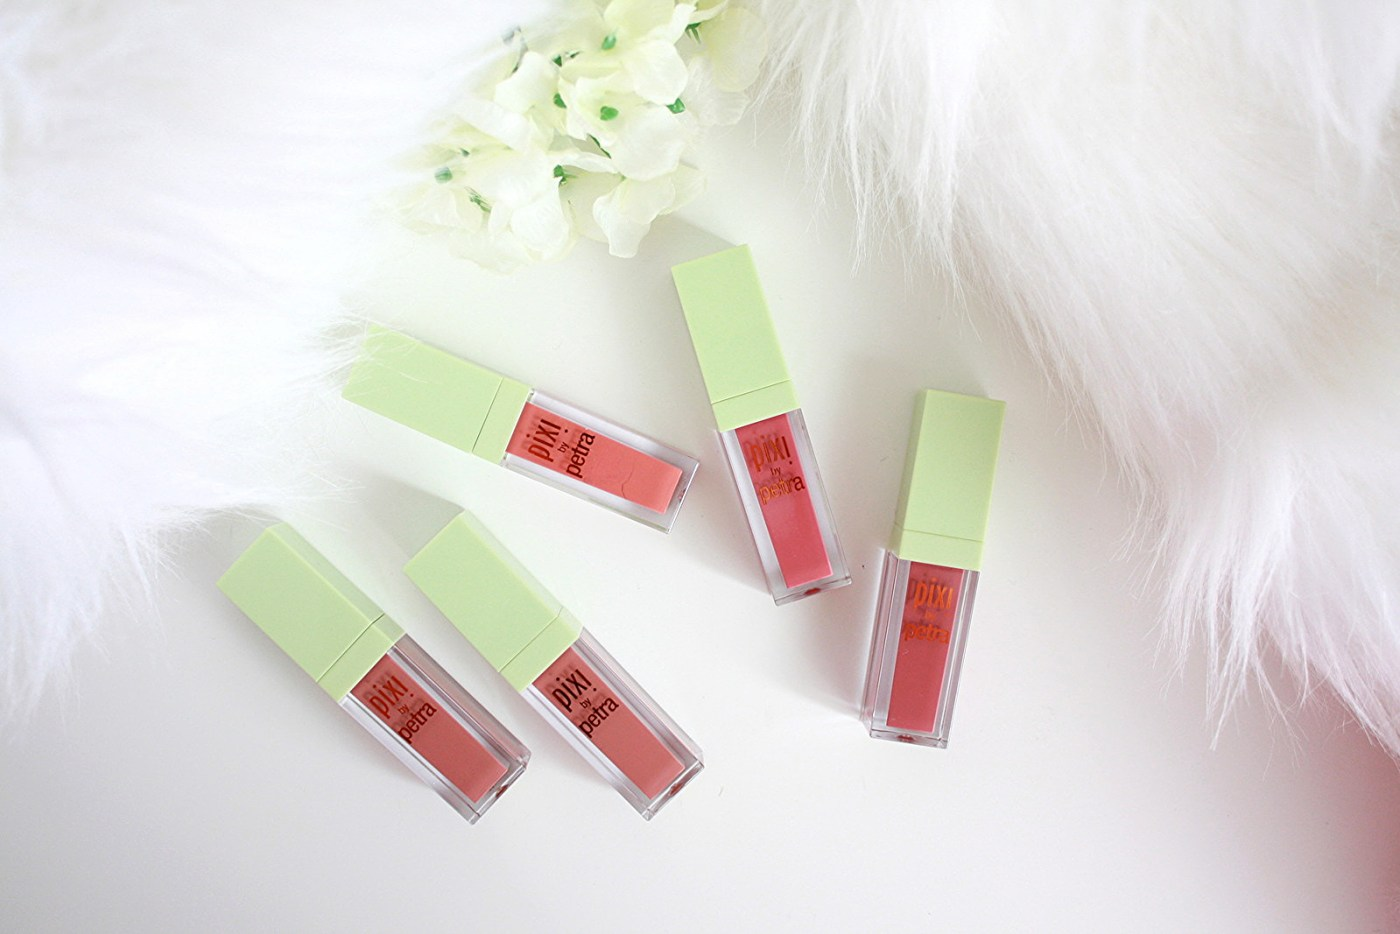 PIXI MATTELAST LIQUID LIP